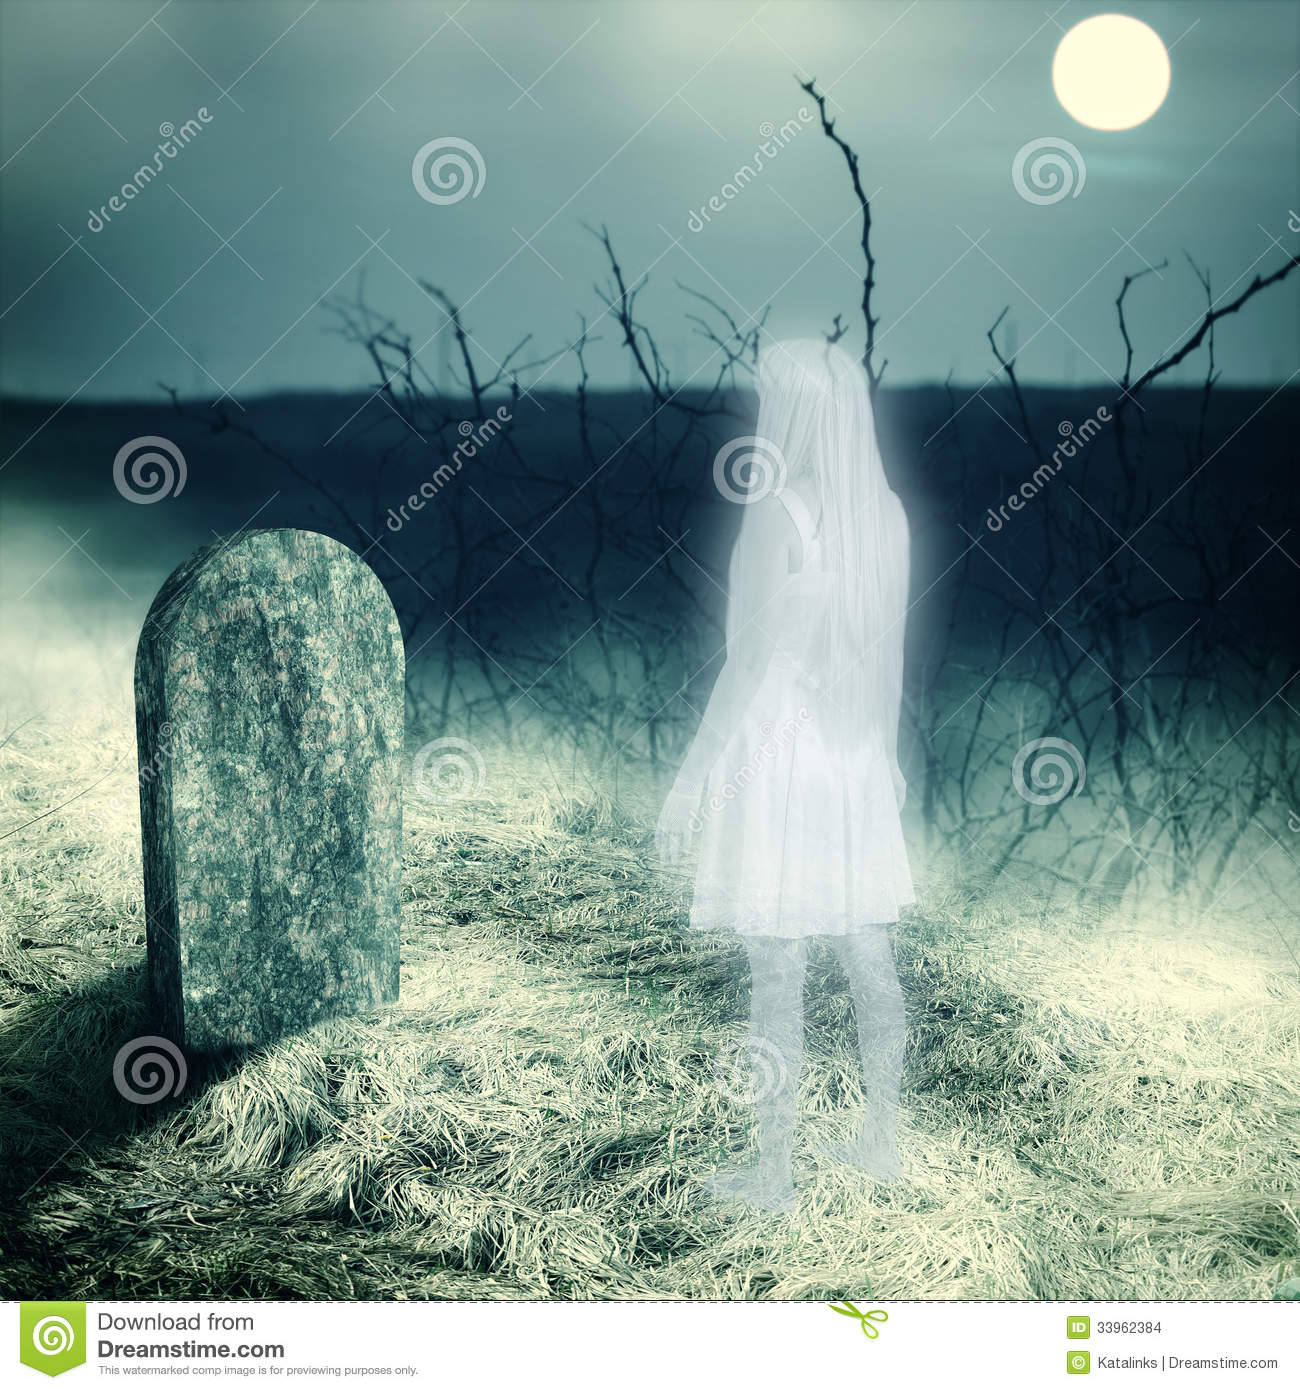 ... look on her grave gravestone on old cemetery. Midnight with full moon